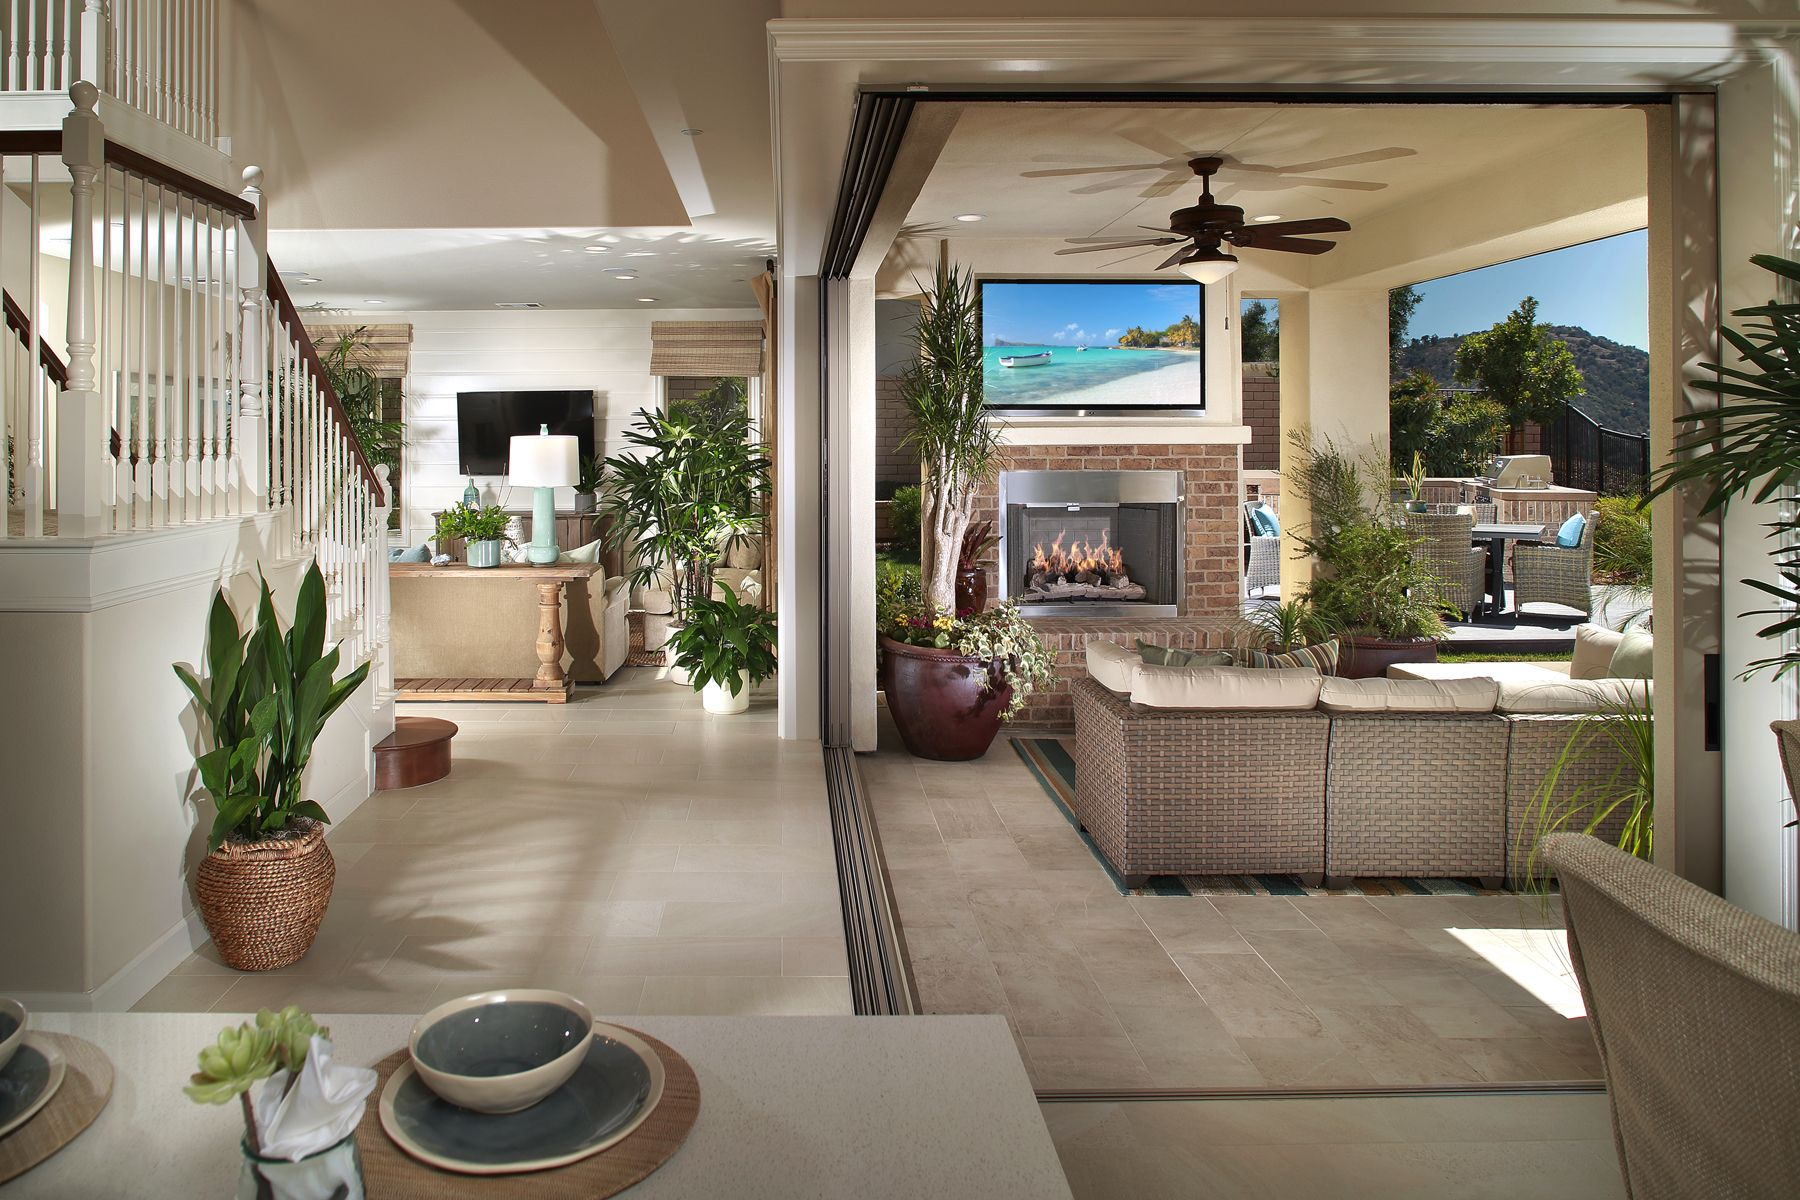 Hillcrest is a brandnew gated community offering an